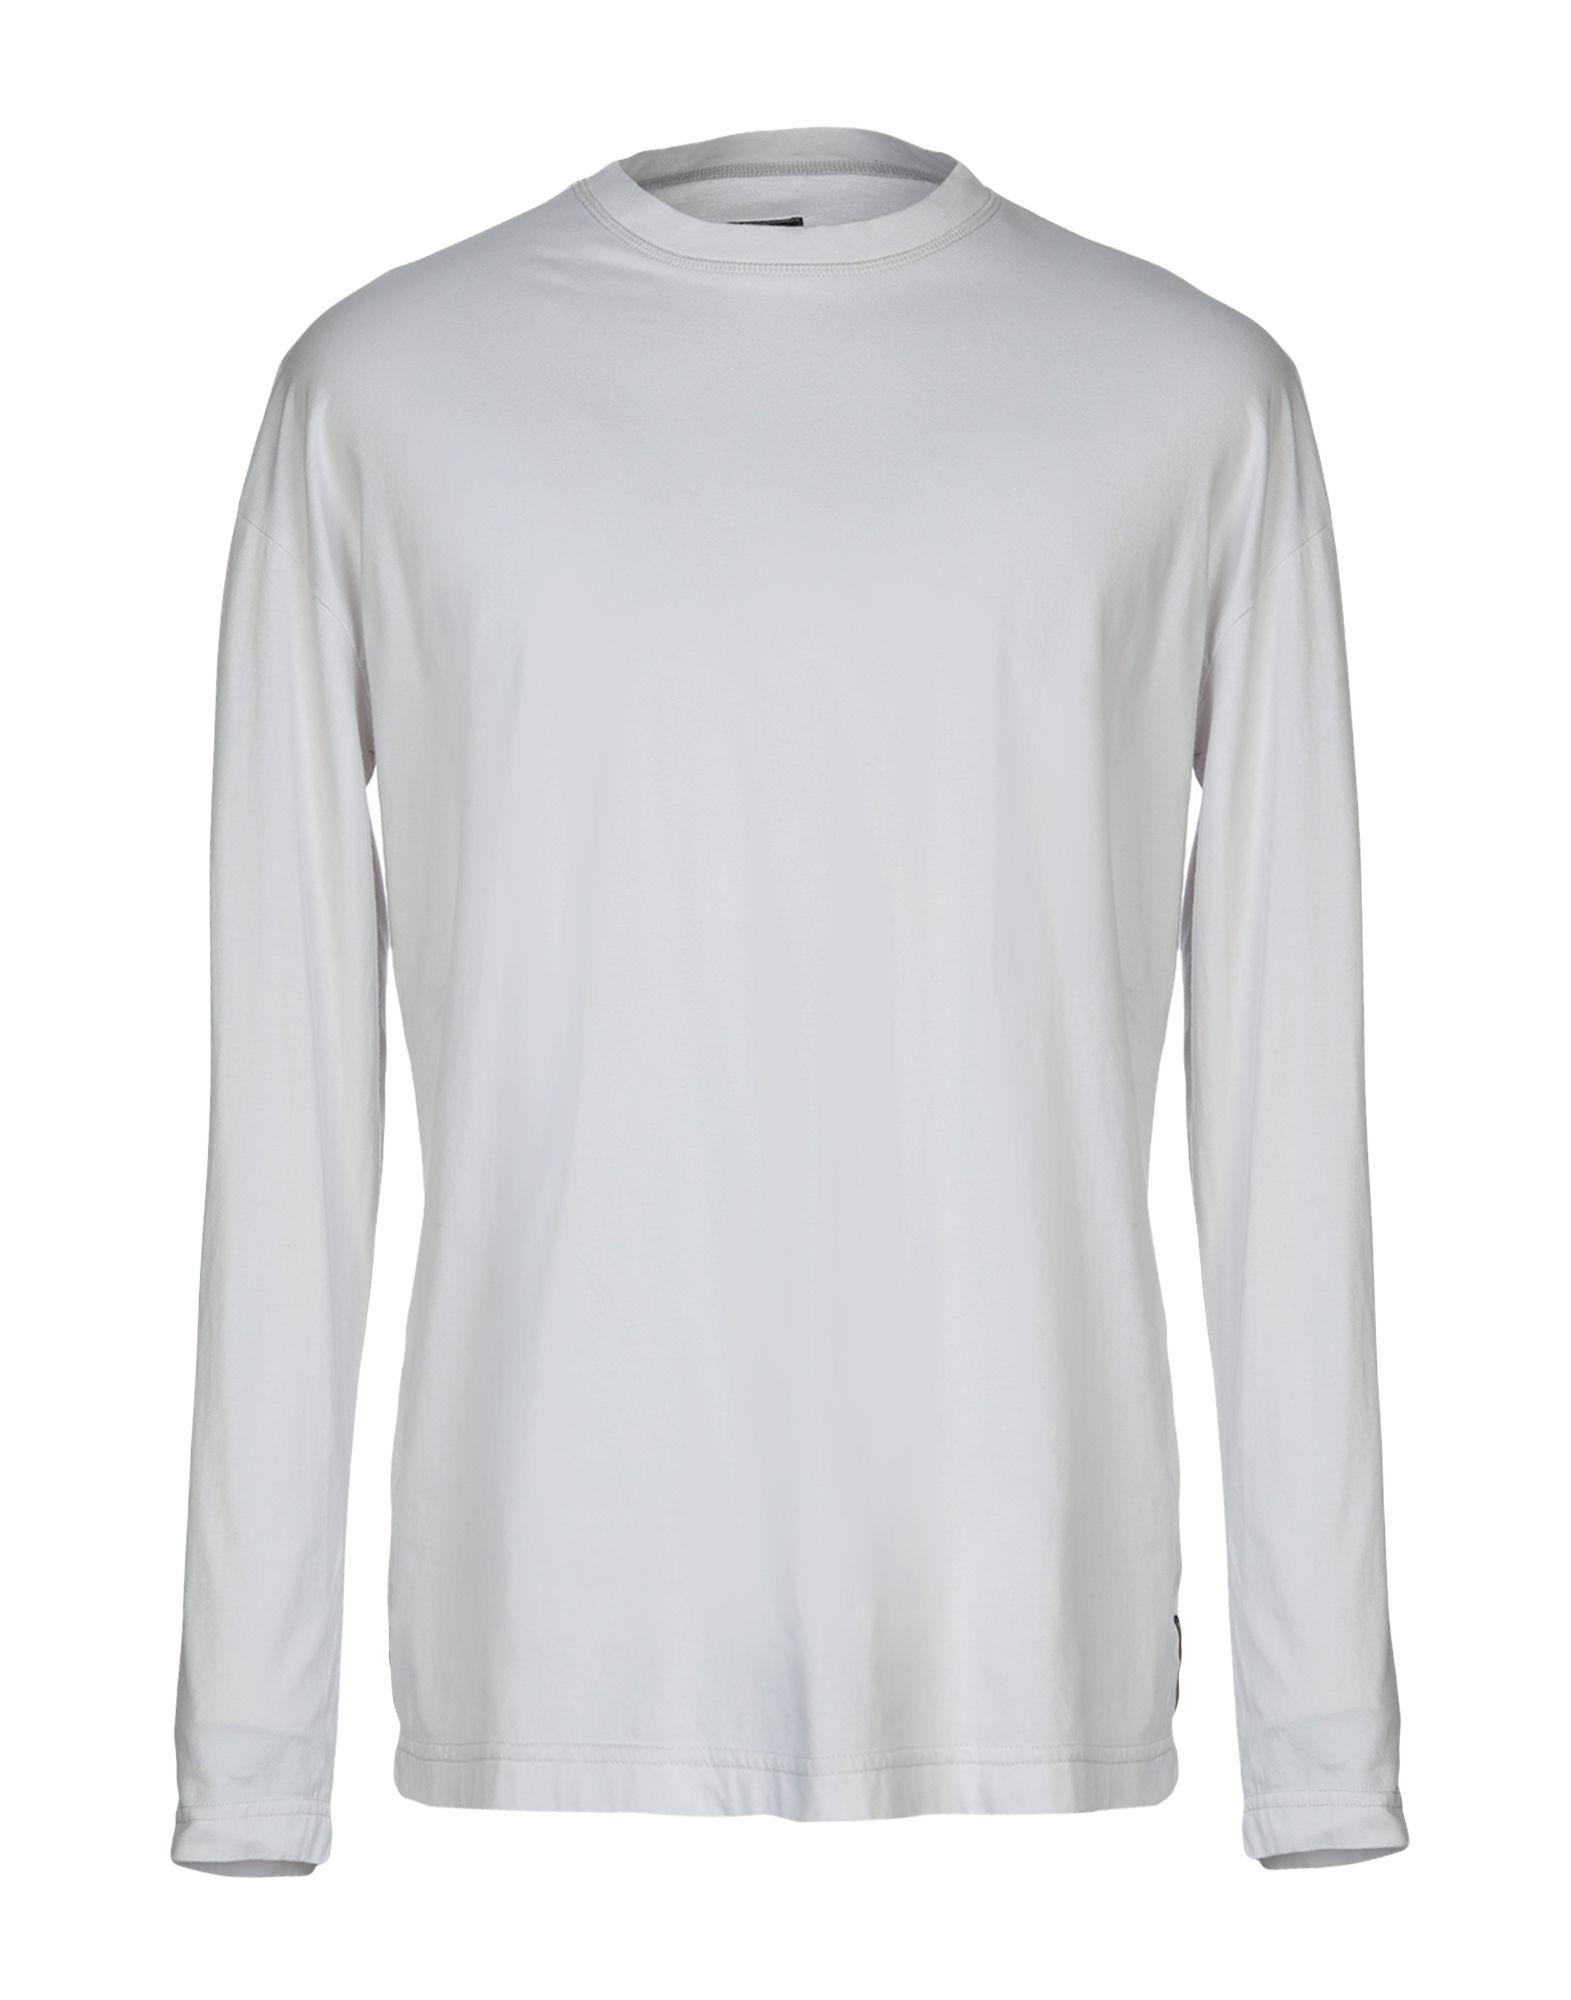 92629e9bcd Lyst - Armani Jeans T-shirt in Gray for Men